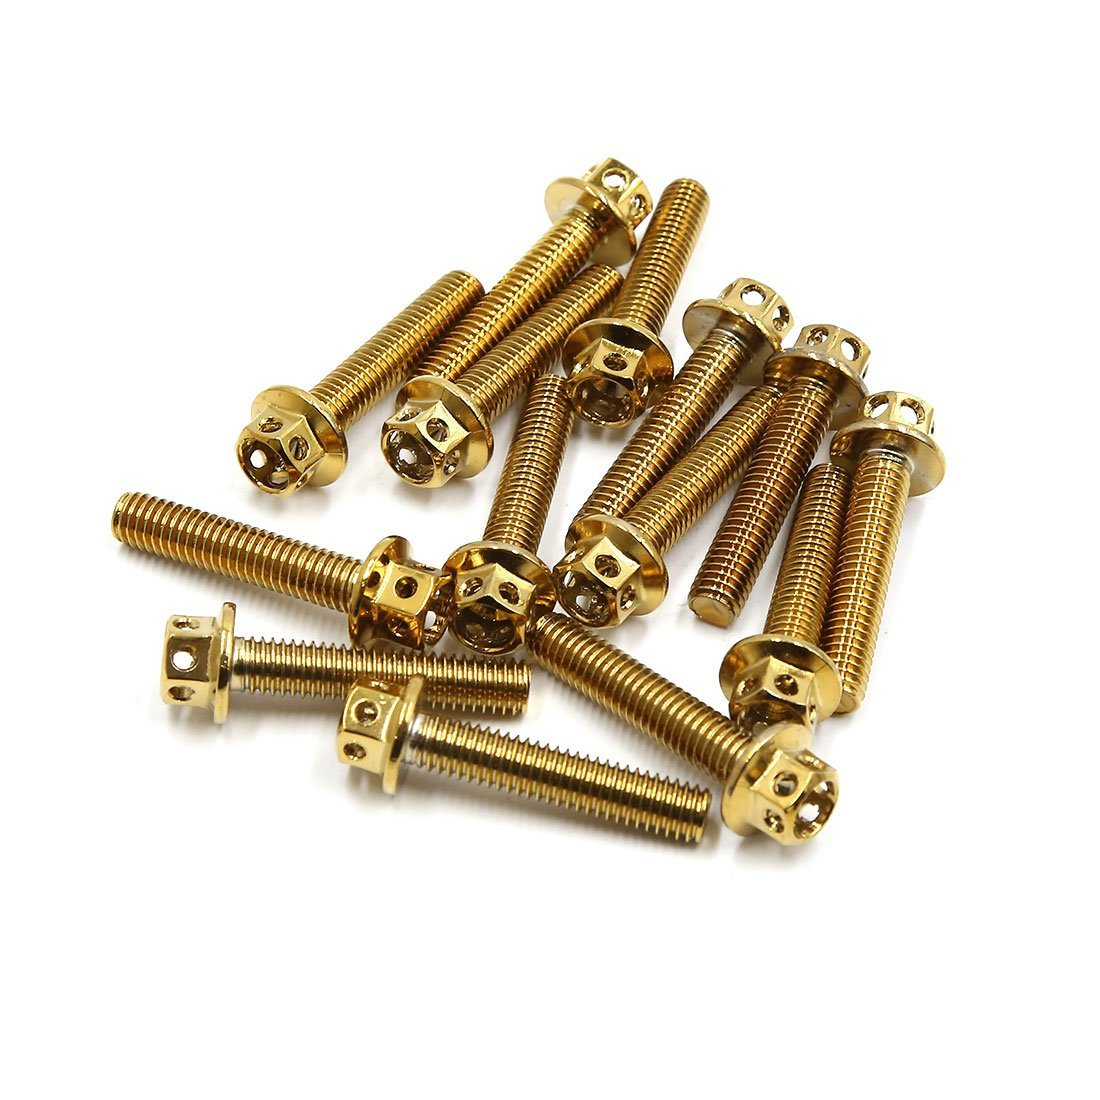 uxcell 14pcs Gold Tone M6 x 30mm Motorcycle Titanium Alloy Hexagon Bolts Clips Screws